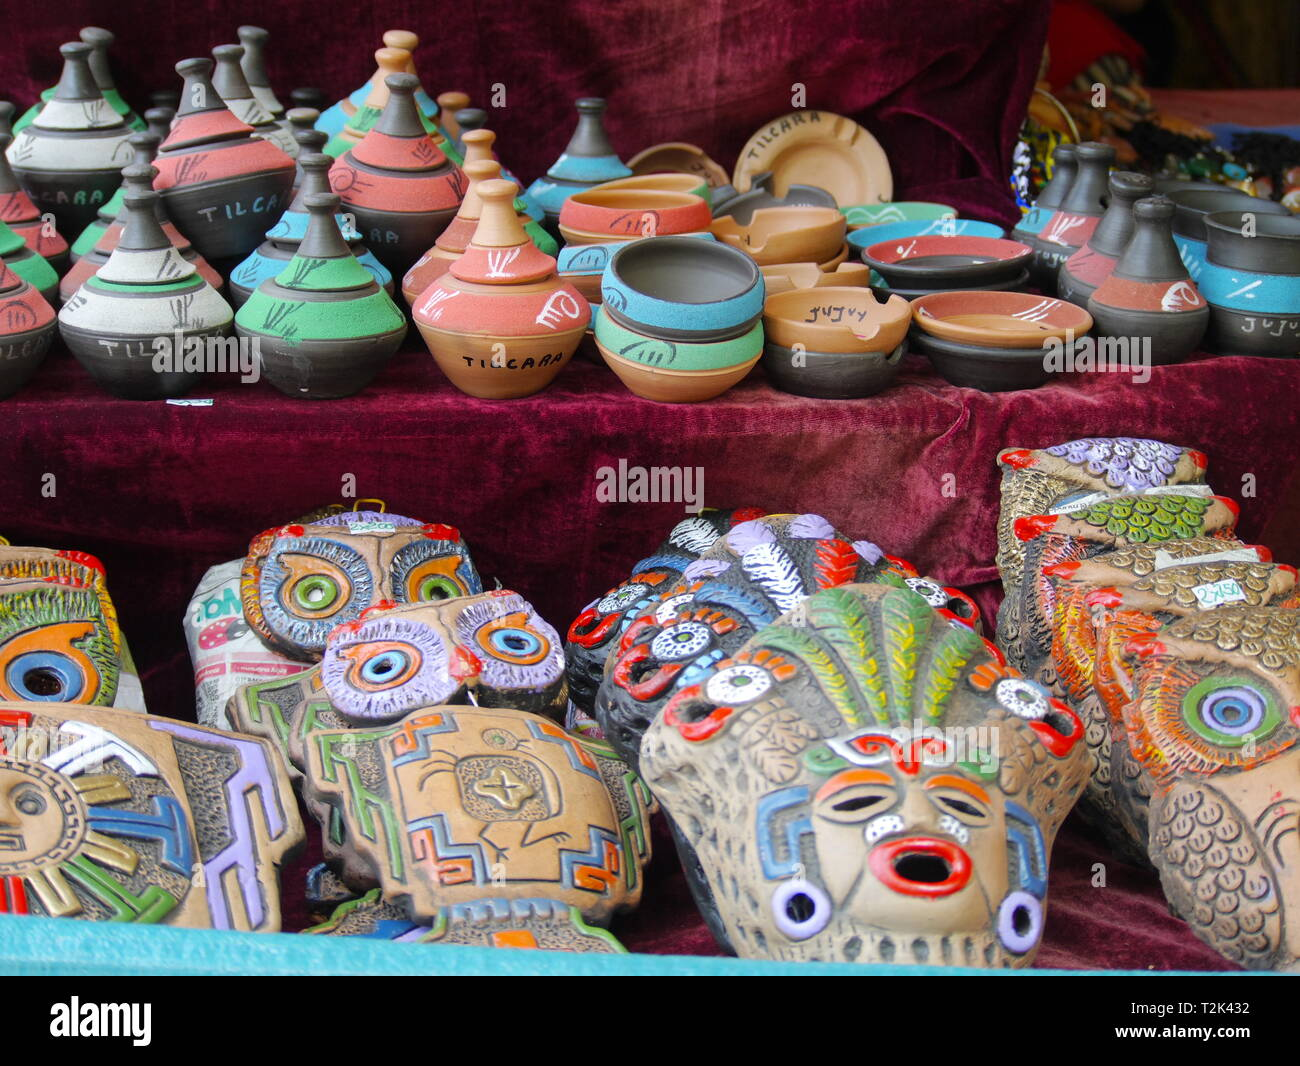 TILCARA, AR - CIRCA OCT, 2018 - Tilcara is the typical andean village, with colorful restaurants and markets. Stock Photo